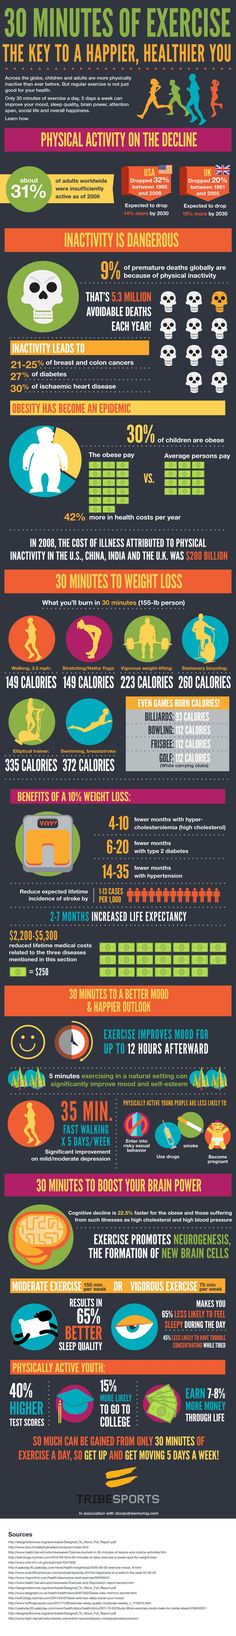 About exercise (infographic)